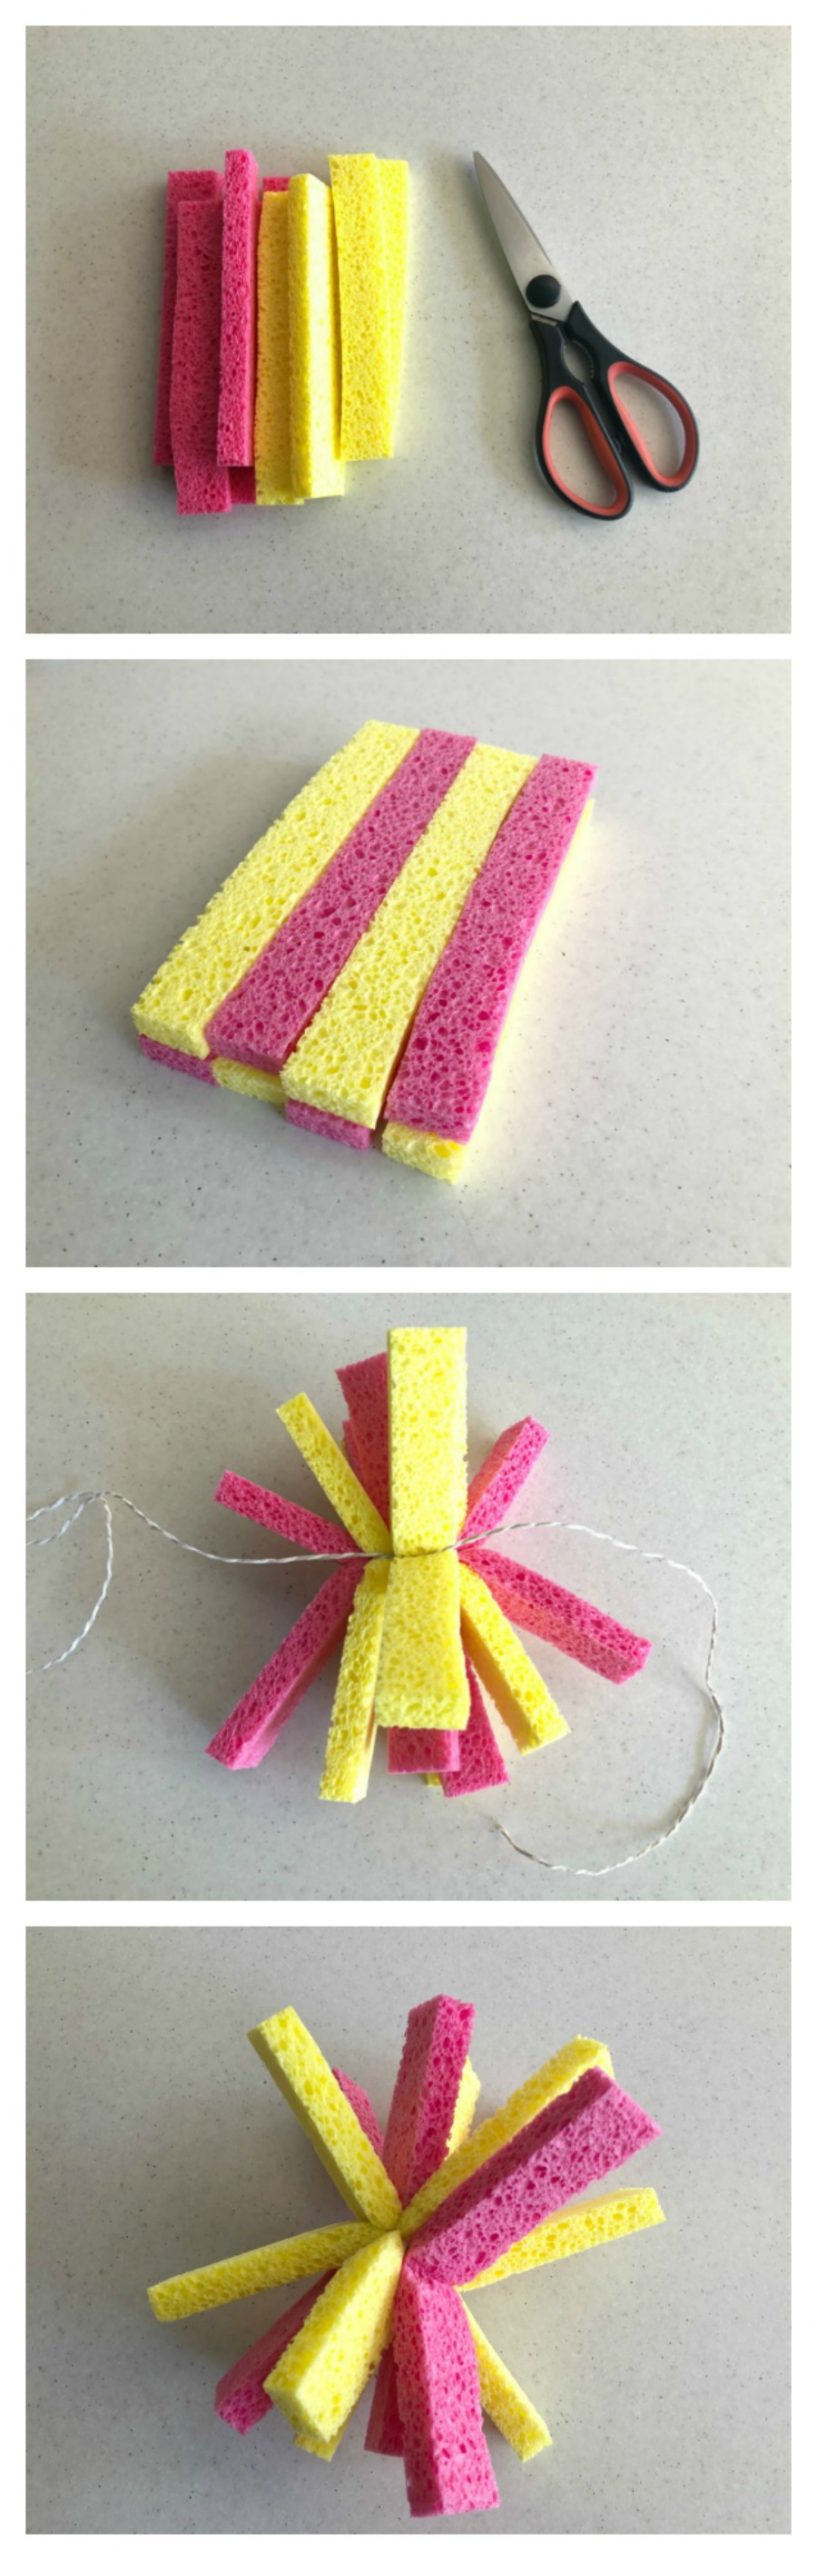 how to make water bombs from sponges